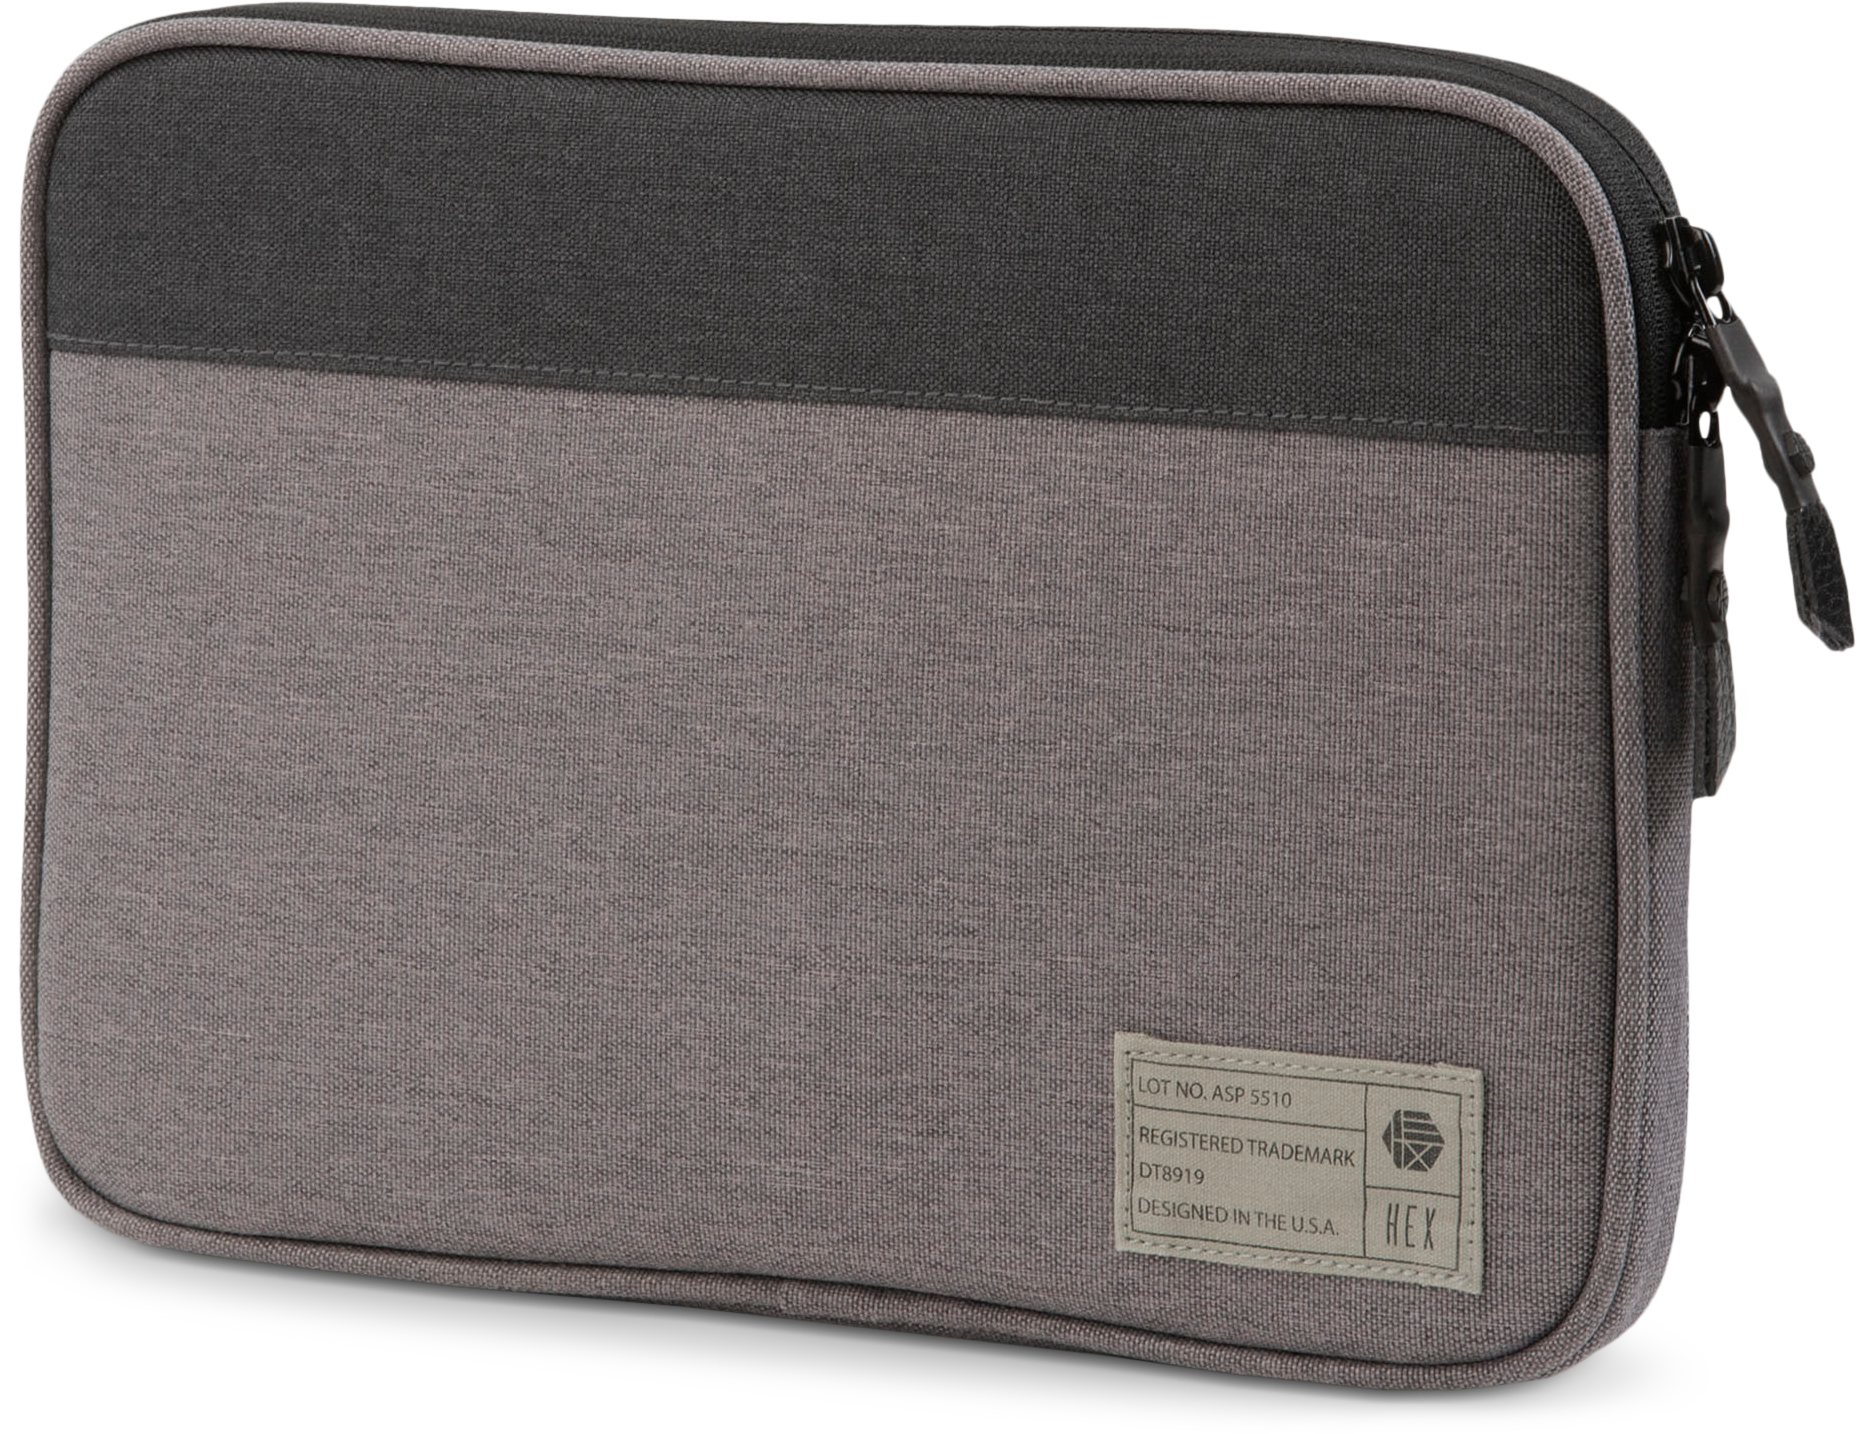 RE2nk3u?ver=bc6c - HEX Surface Go Sleeve in Grey (Nylon)